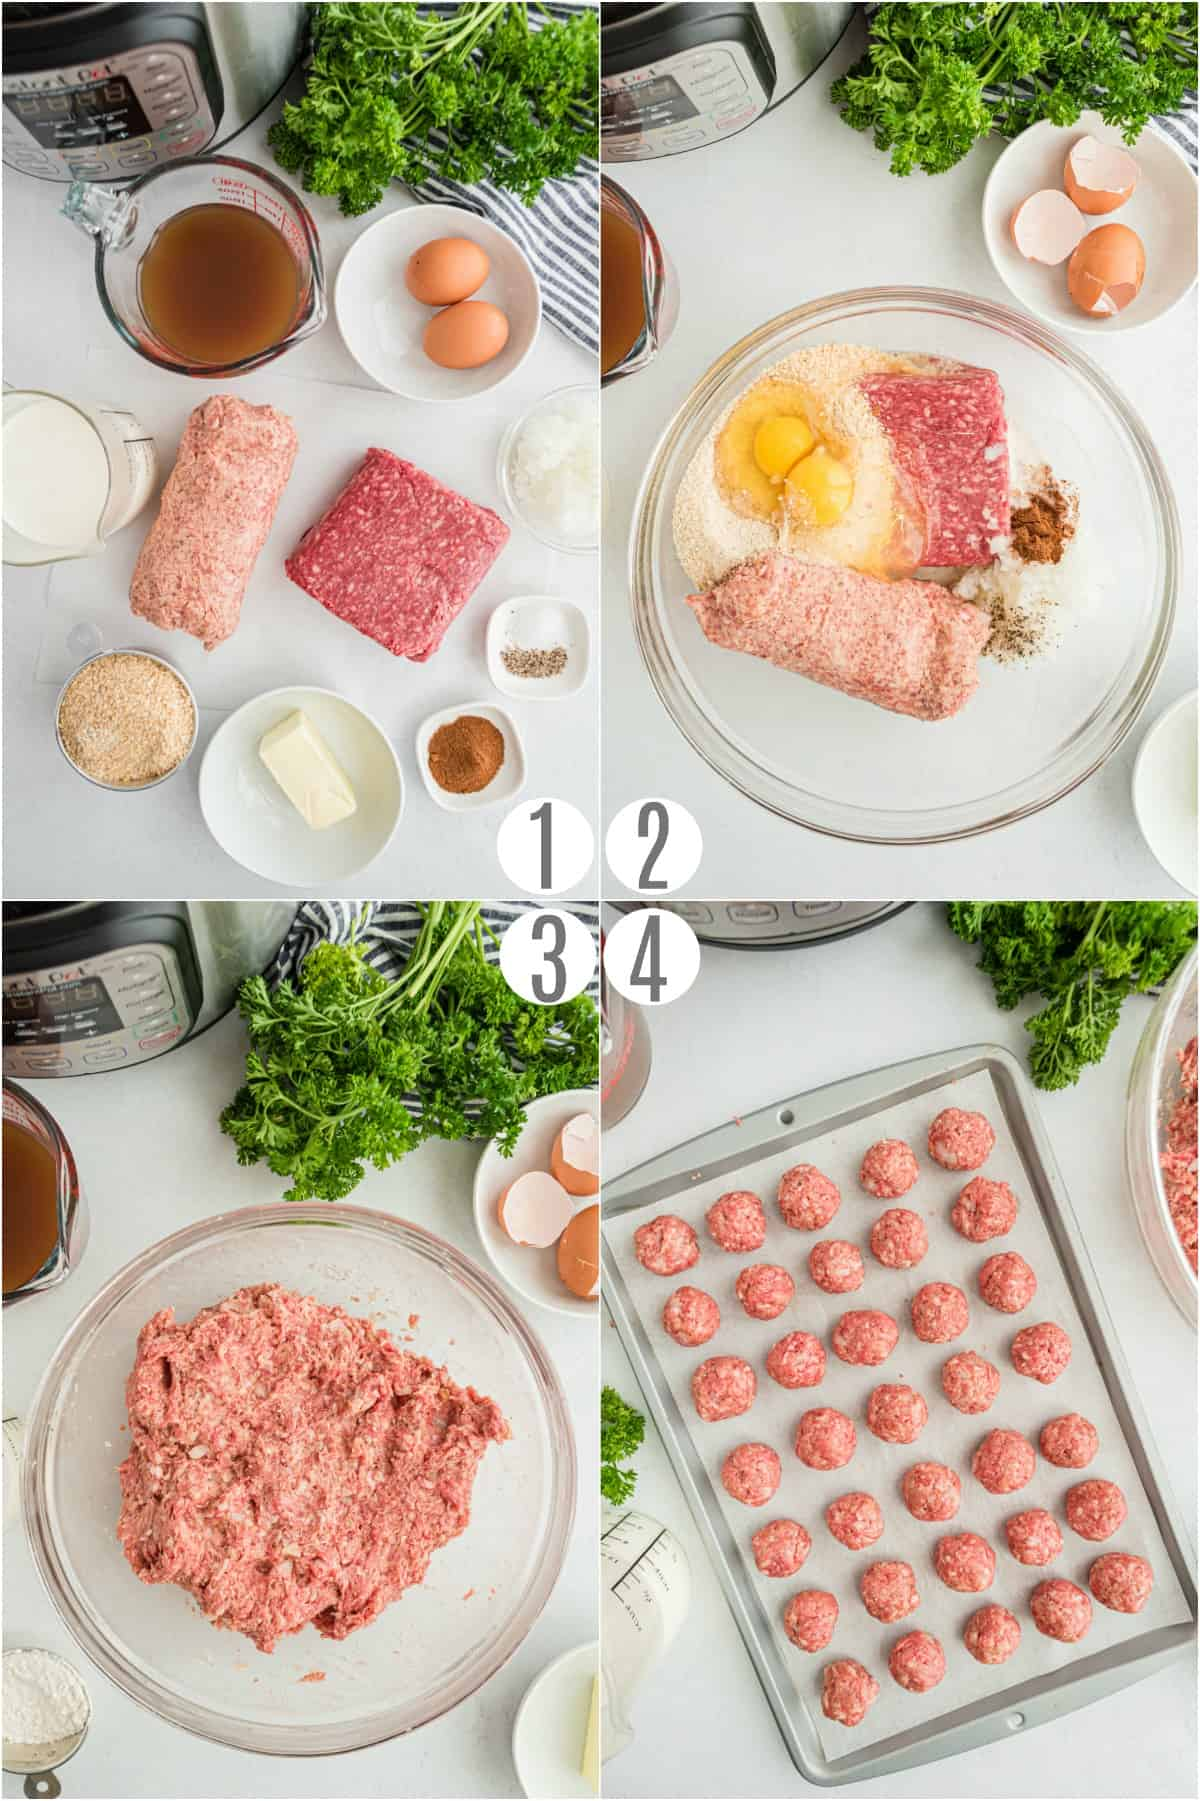 Step by step photos showing how to make meatballs.